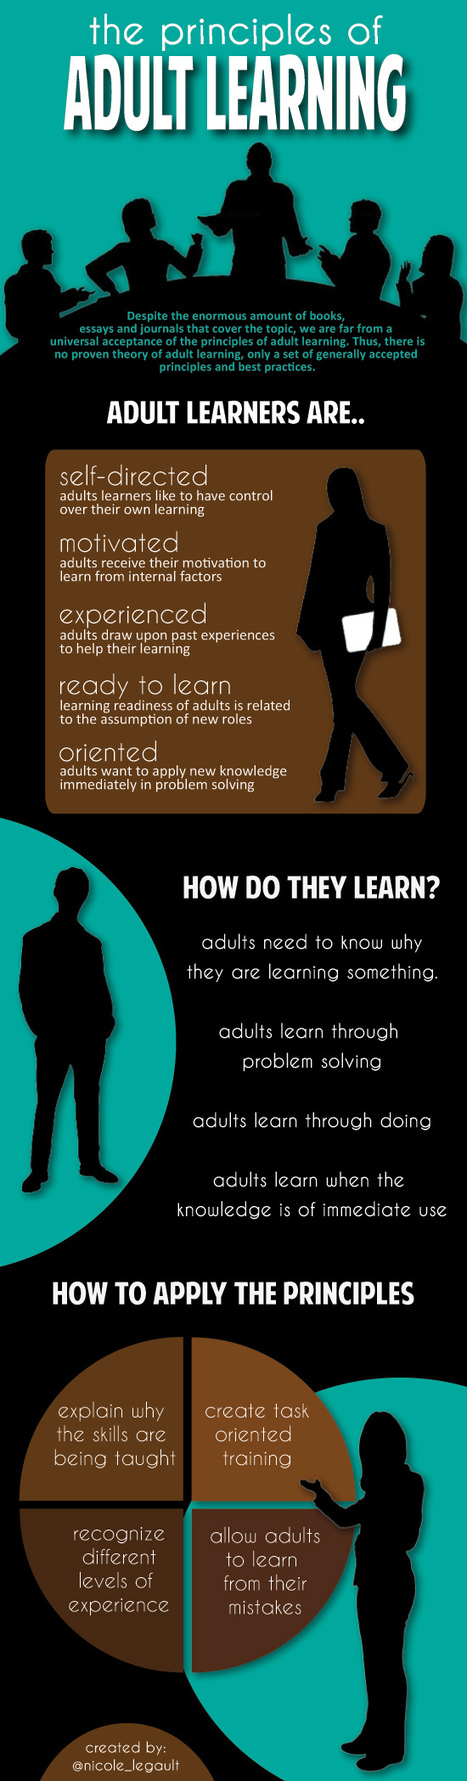 [INFOGRAPHIC] An Overview of the Principles of Adult Learning | Education Research | Scoop.it